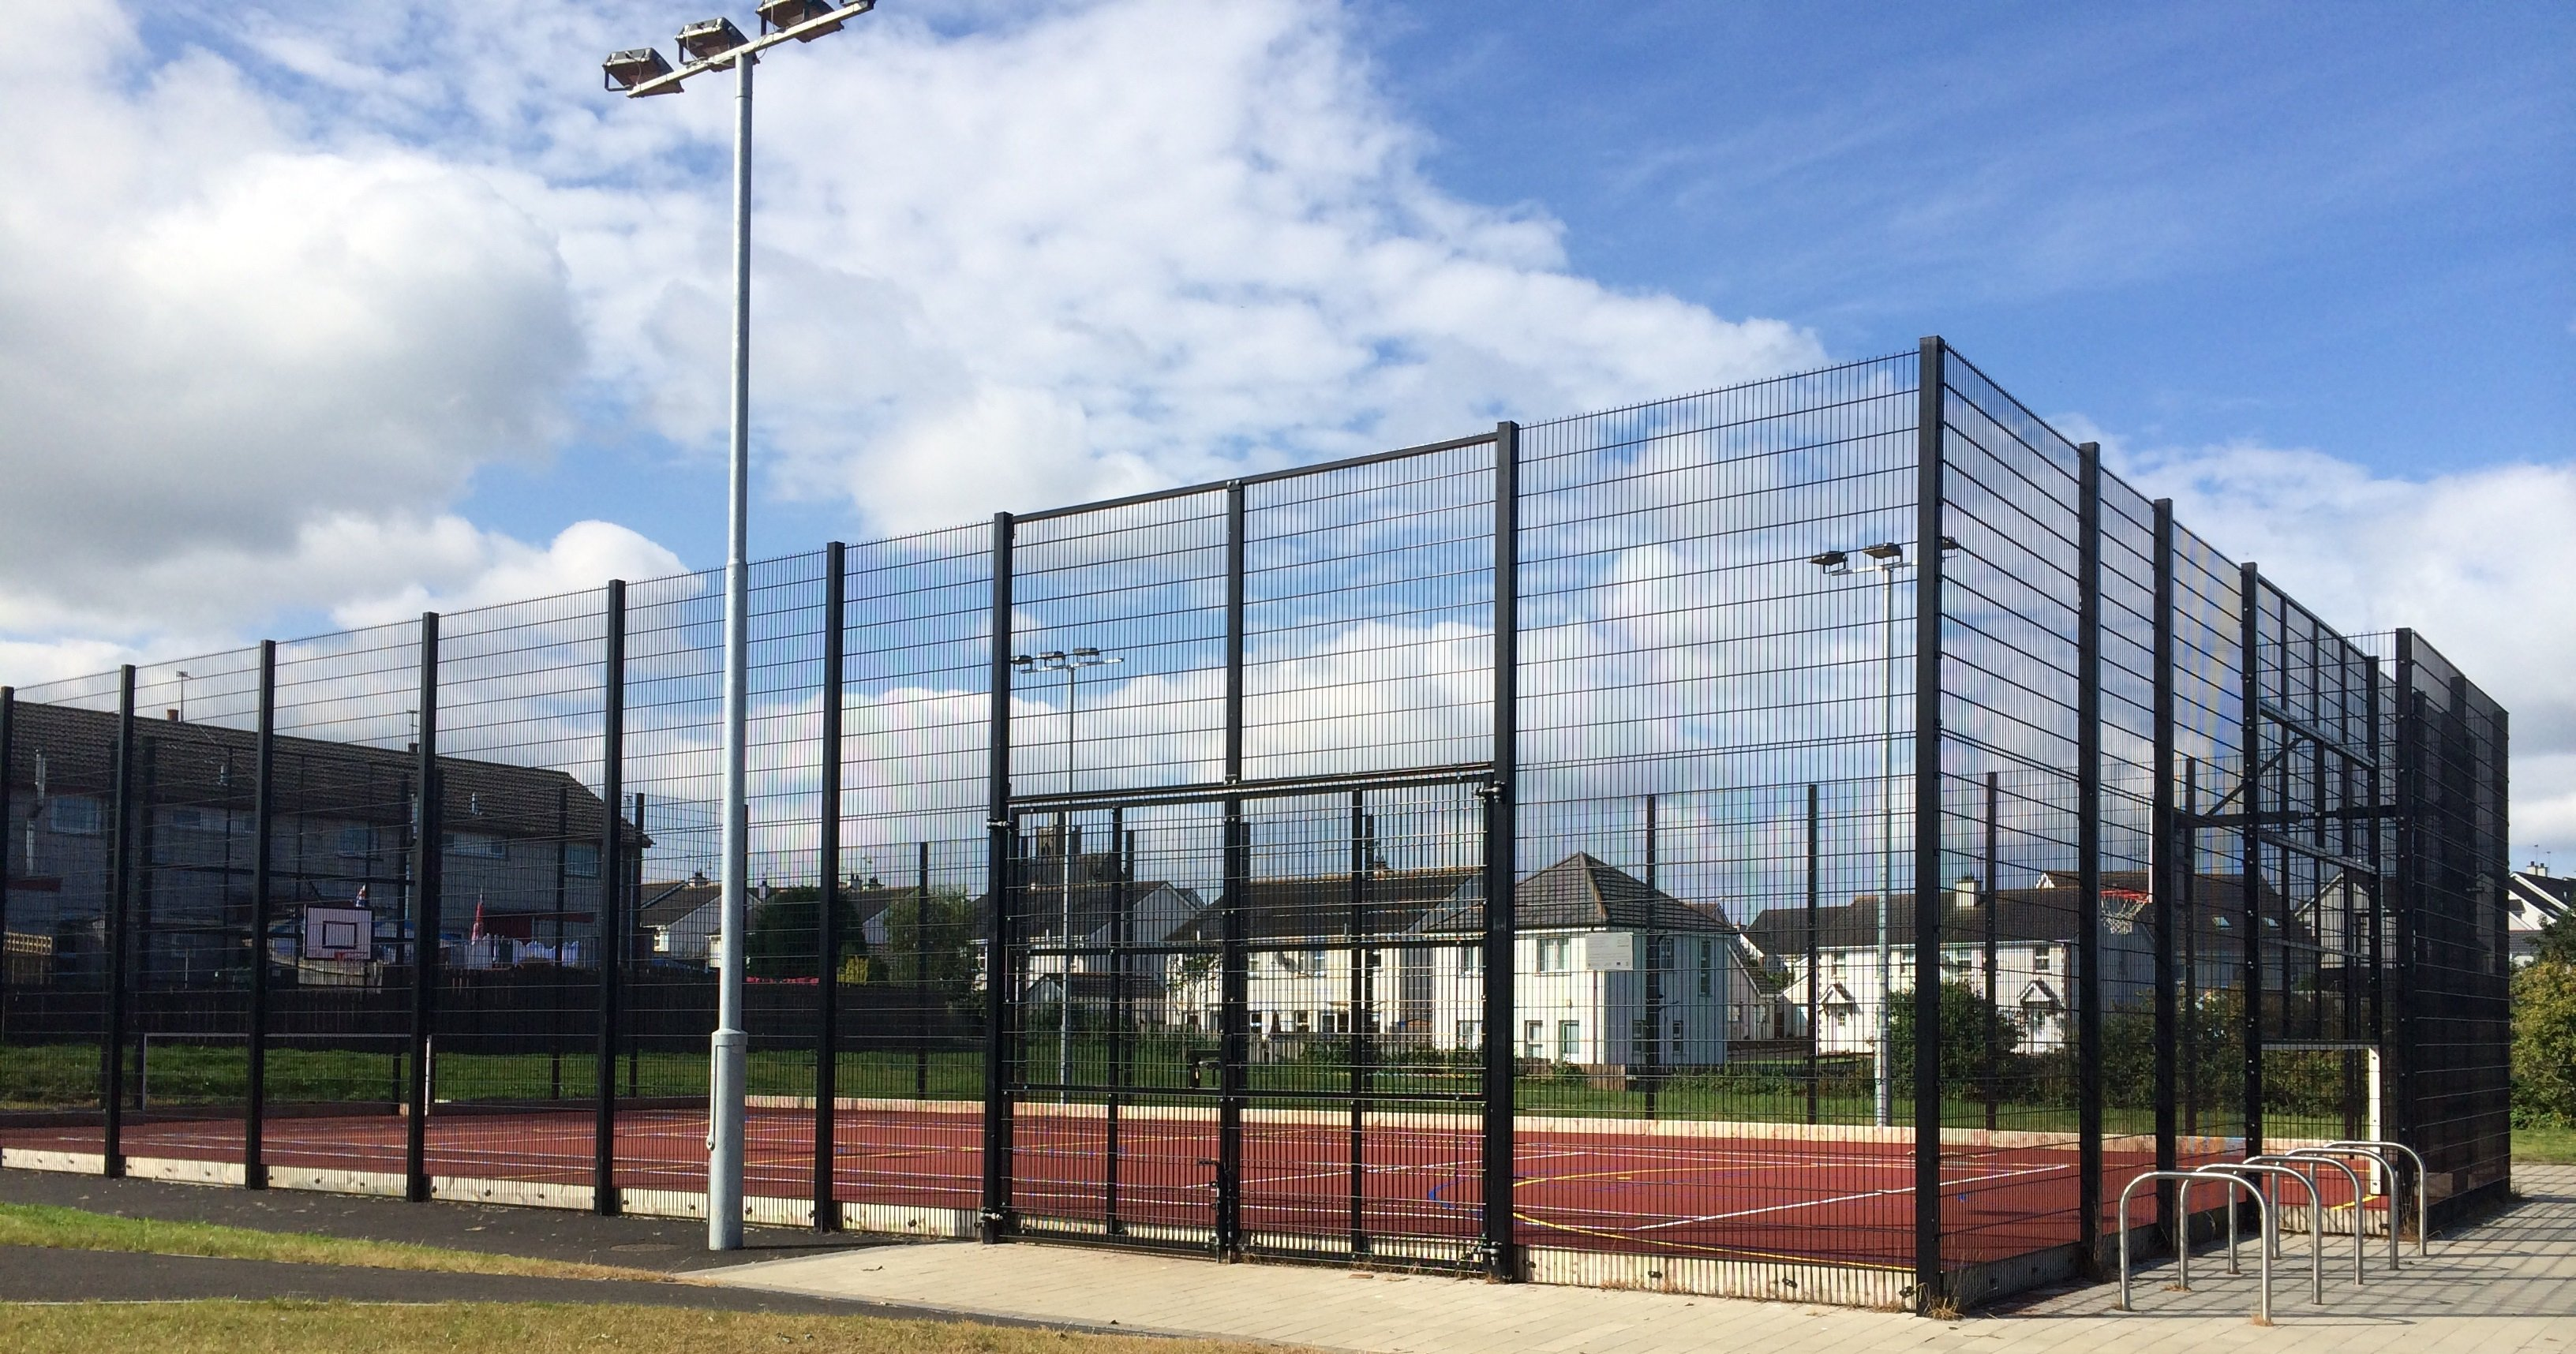 Sports court enclosed by high wire fencing